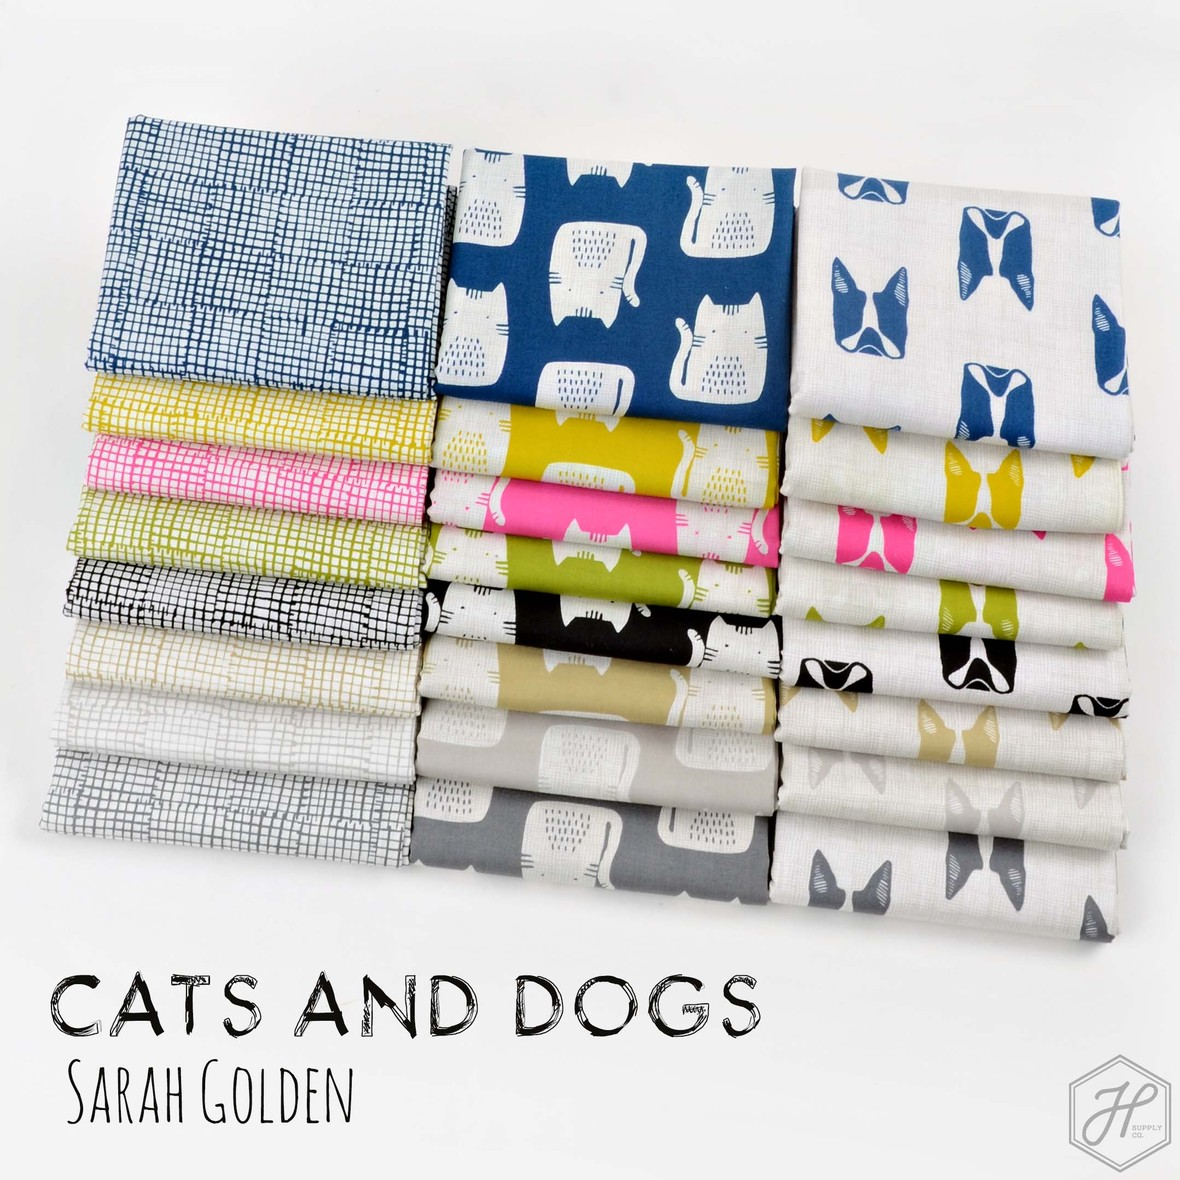 Cats and Dogs Fabric Poster Hawthorne Supply Co and Sarah Golden